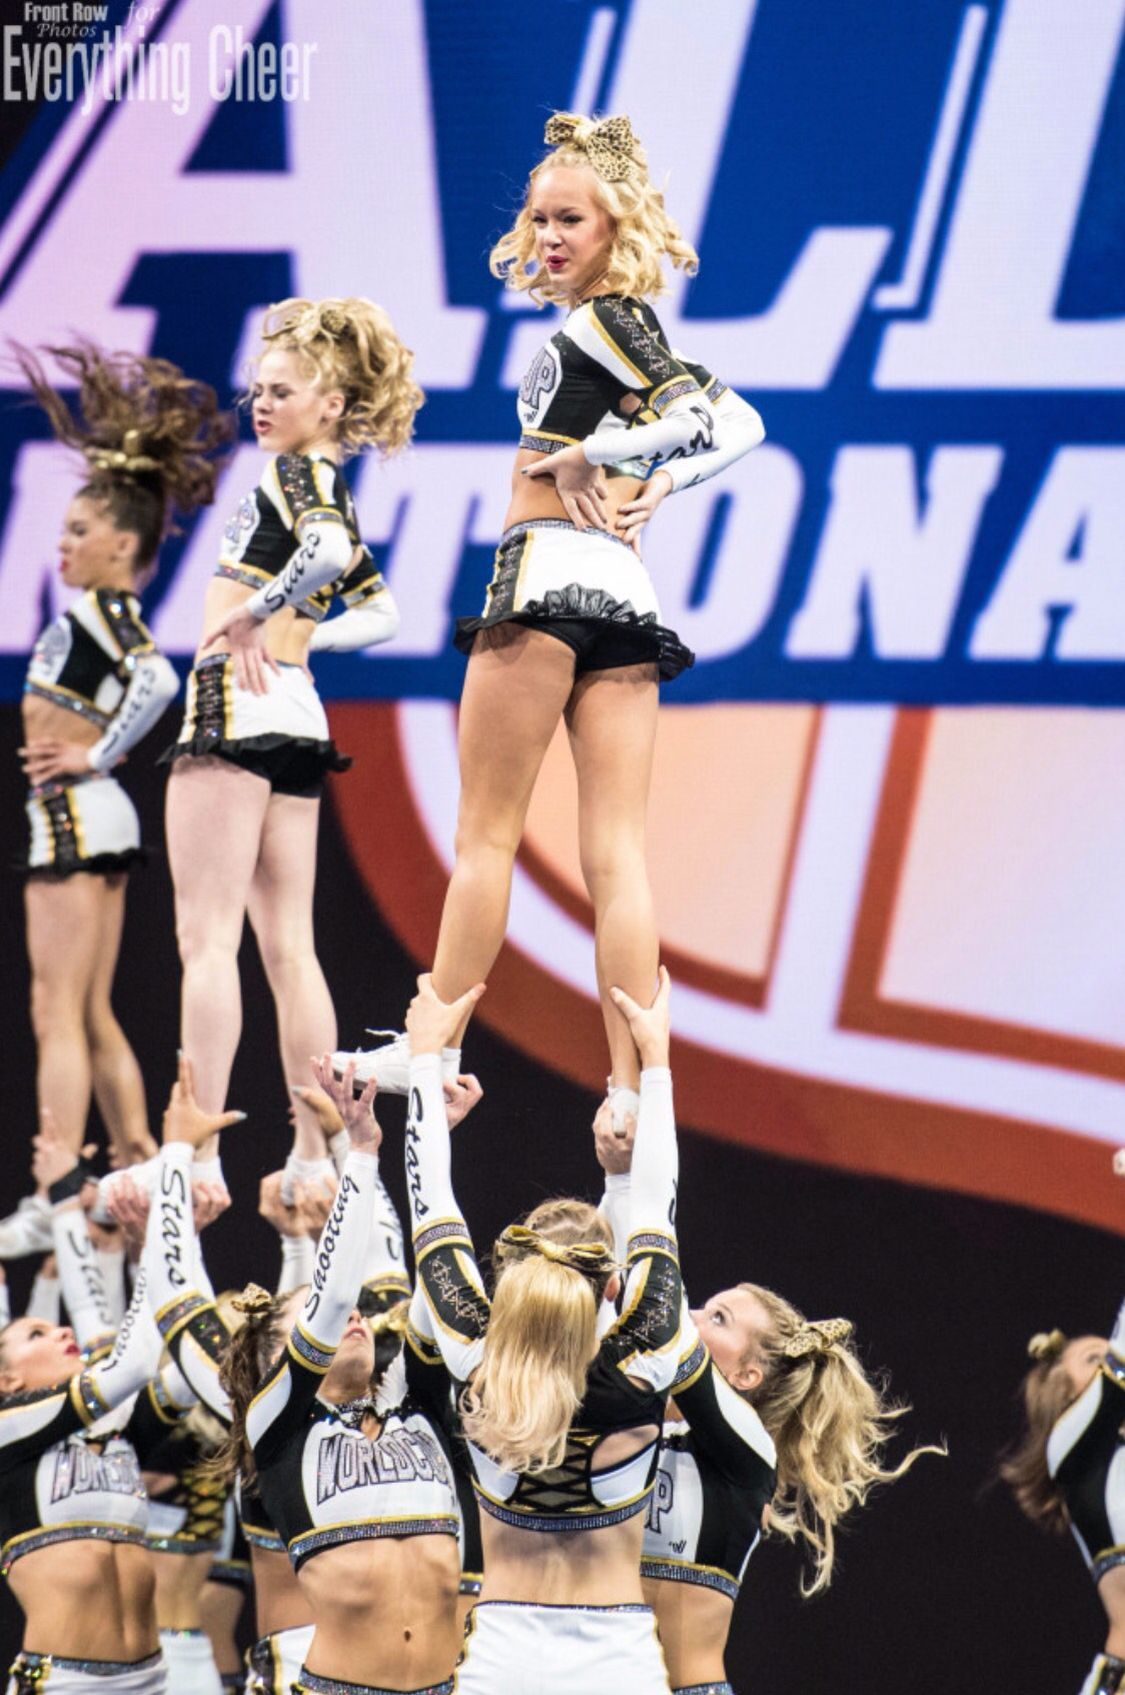 World Cup All Stars Shooting Stars Large Senior All Girl 2015 World Champions Cheer Pictures Cheerleading All Star Cheer